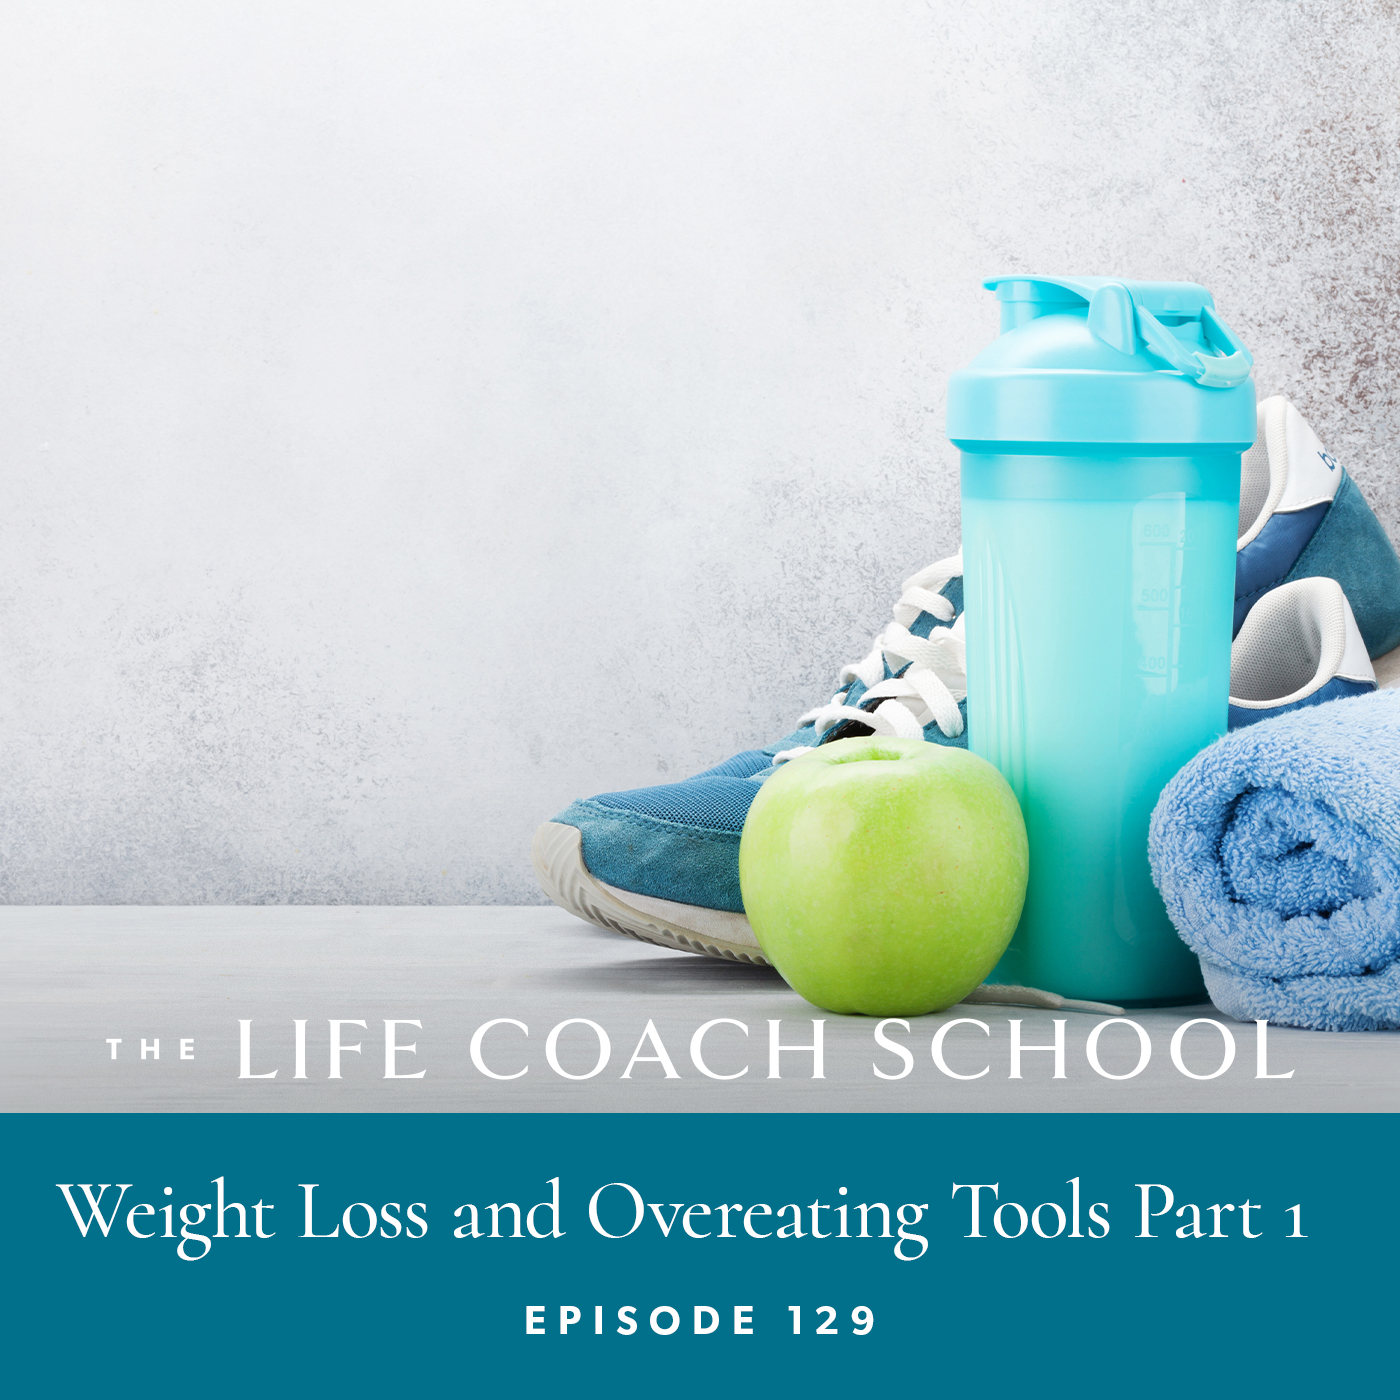 The Life Coach School Podcast with Brooke Castillo | Episode 129 | Weight Loss and Overeating Tools Part 1